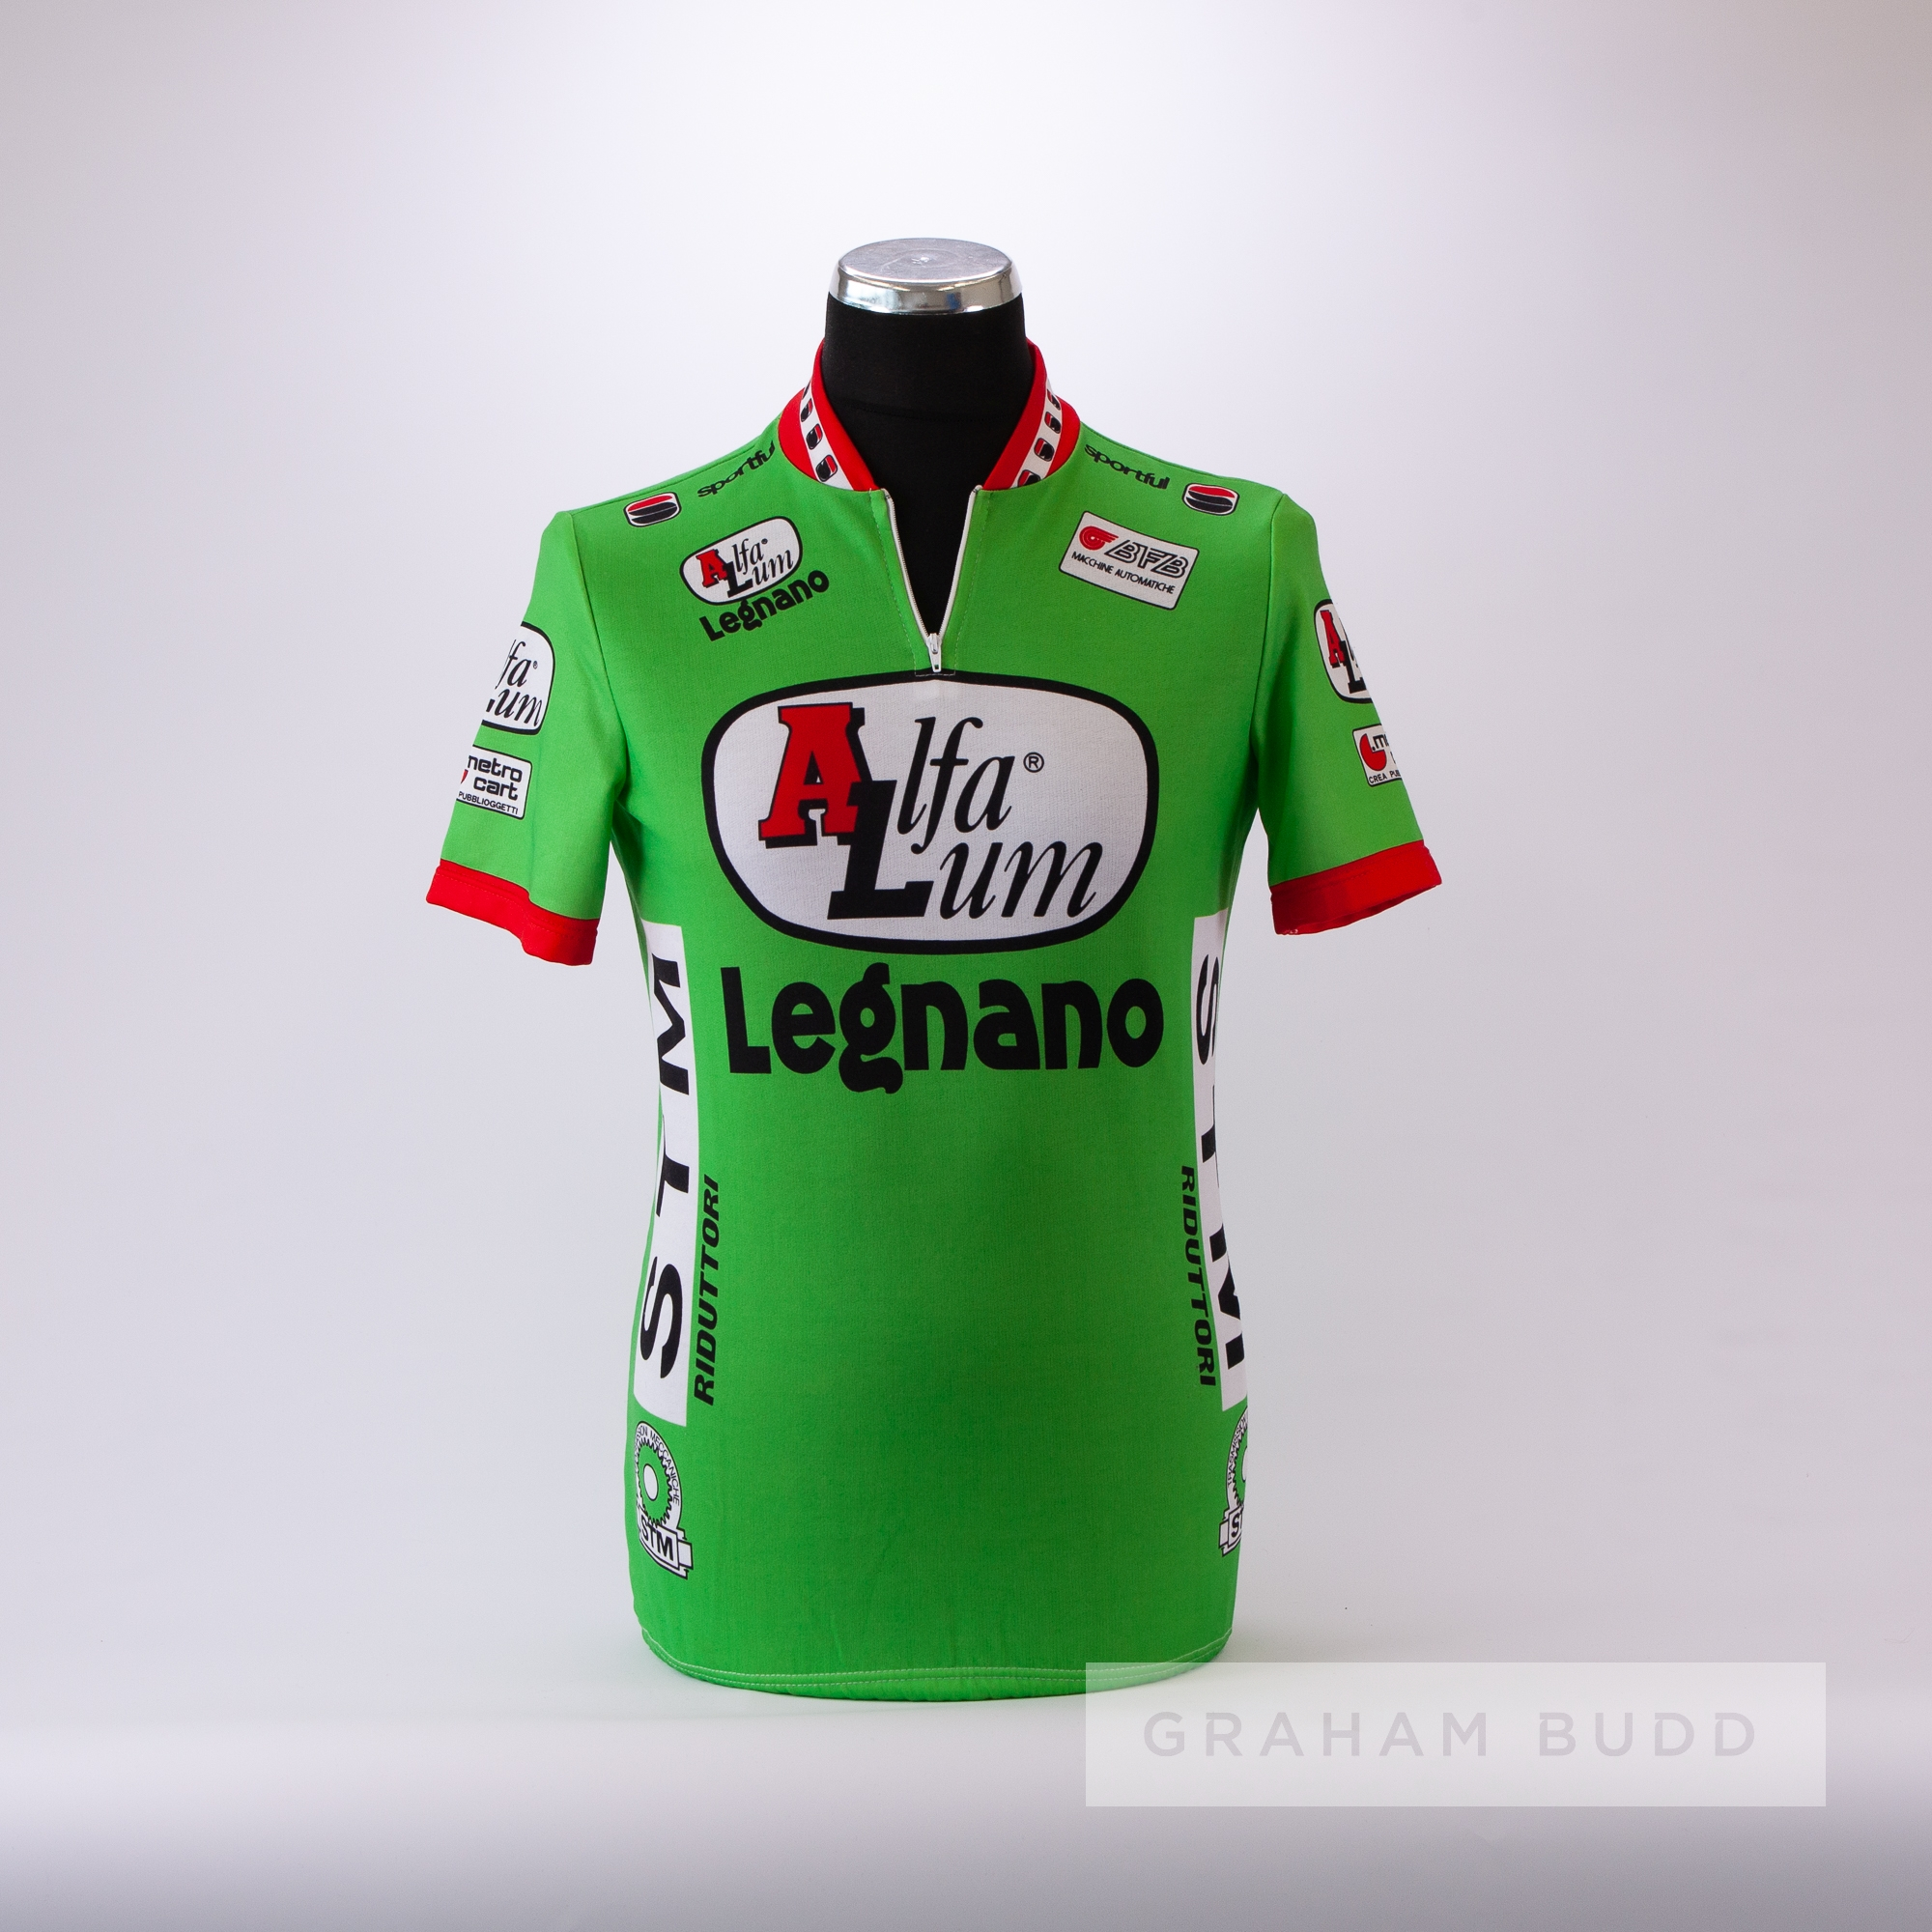 1988 green, white, red and black Italian Alfa Lum Legnano Cycling race jersey, scarce, polyester - Image 3 of 4